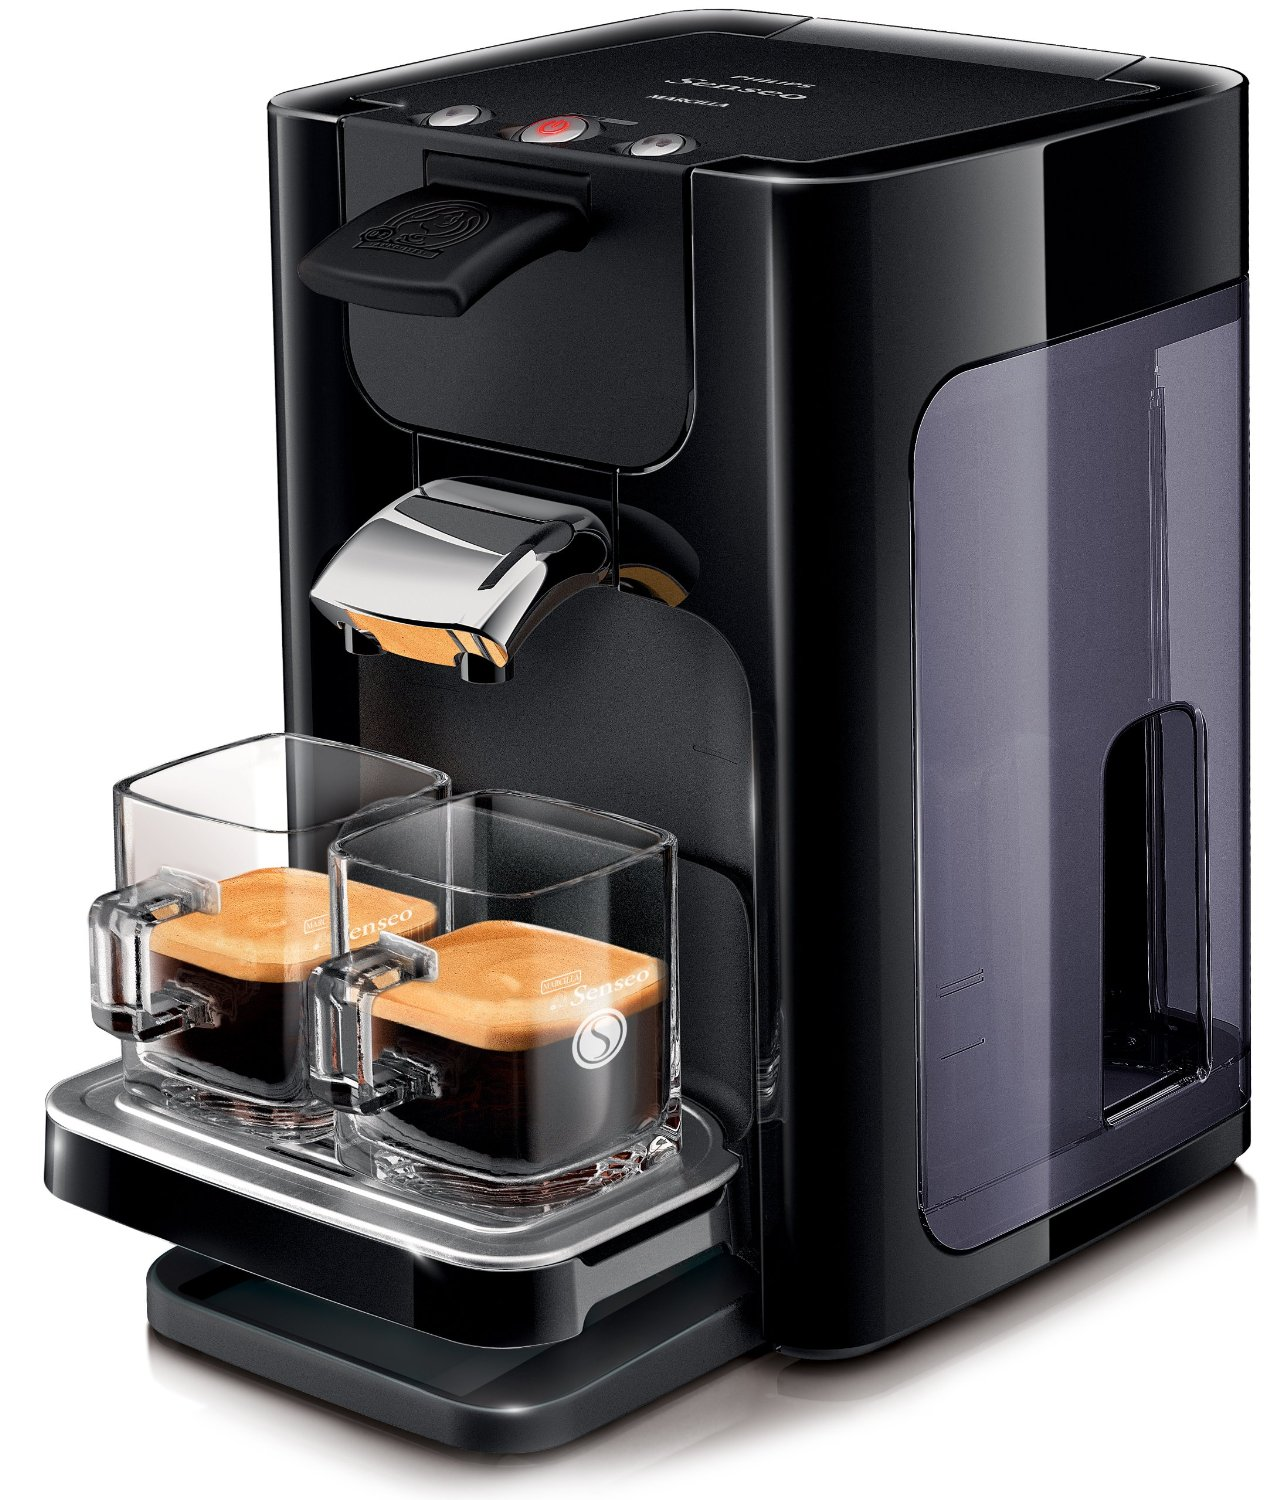 philips senseo quadrante hd7860 coffee maker 100 the coffee blog. Black Bedroom Furniture Sets. Home Design Ideas